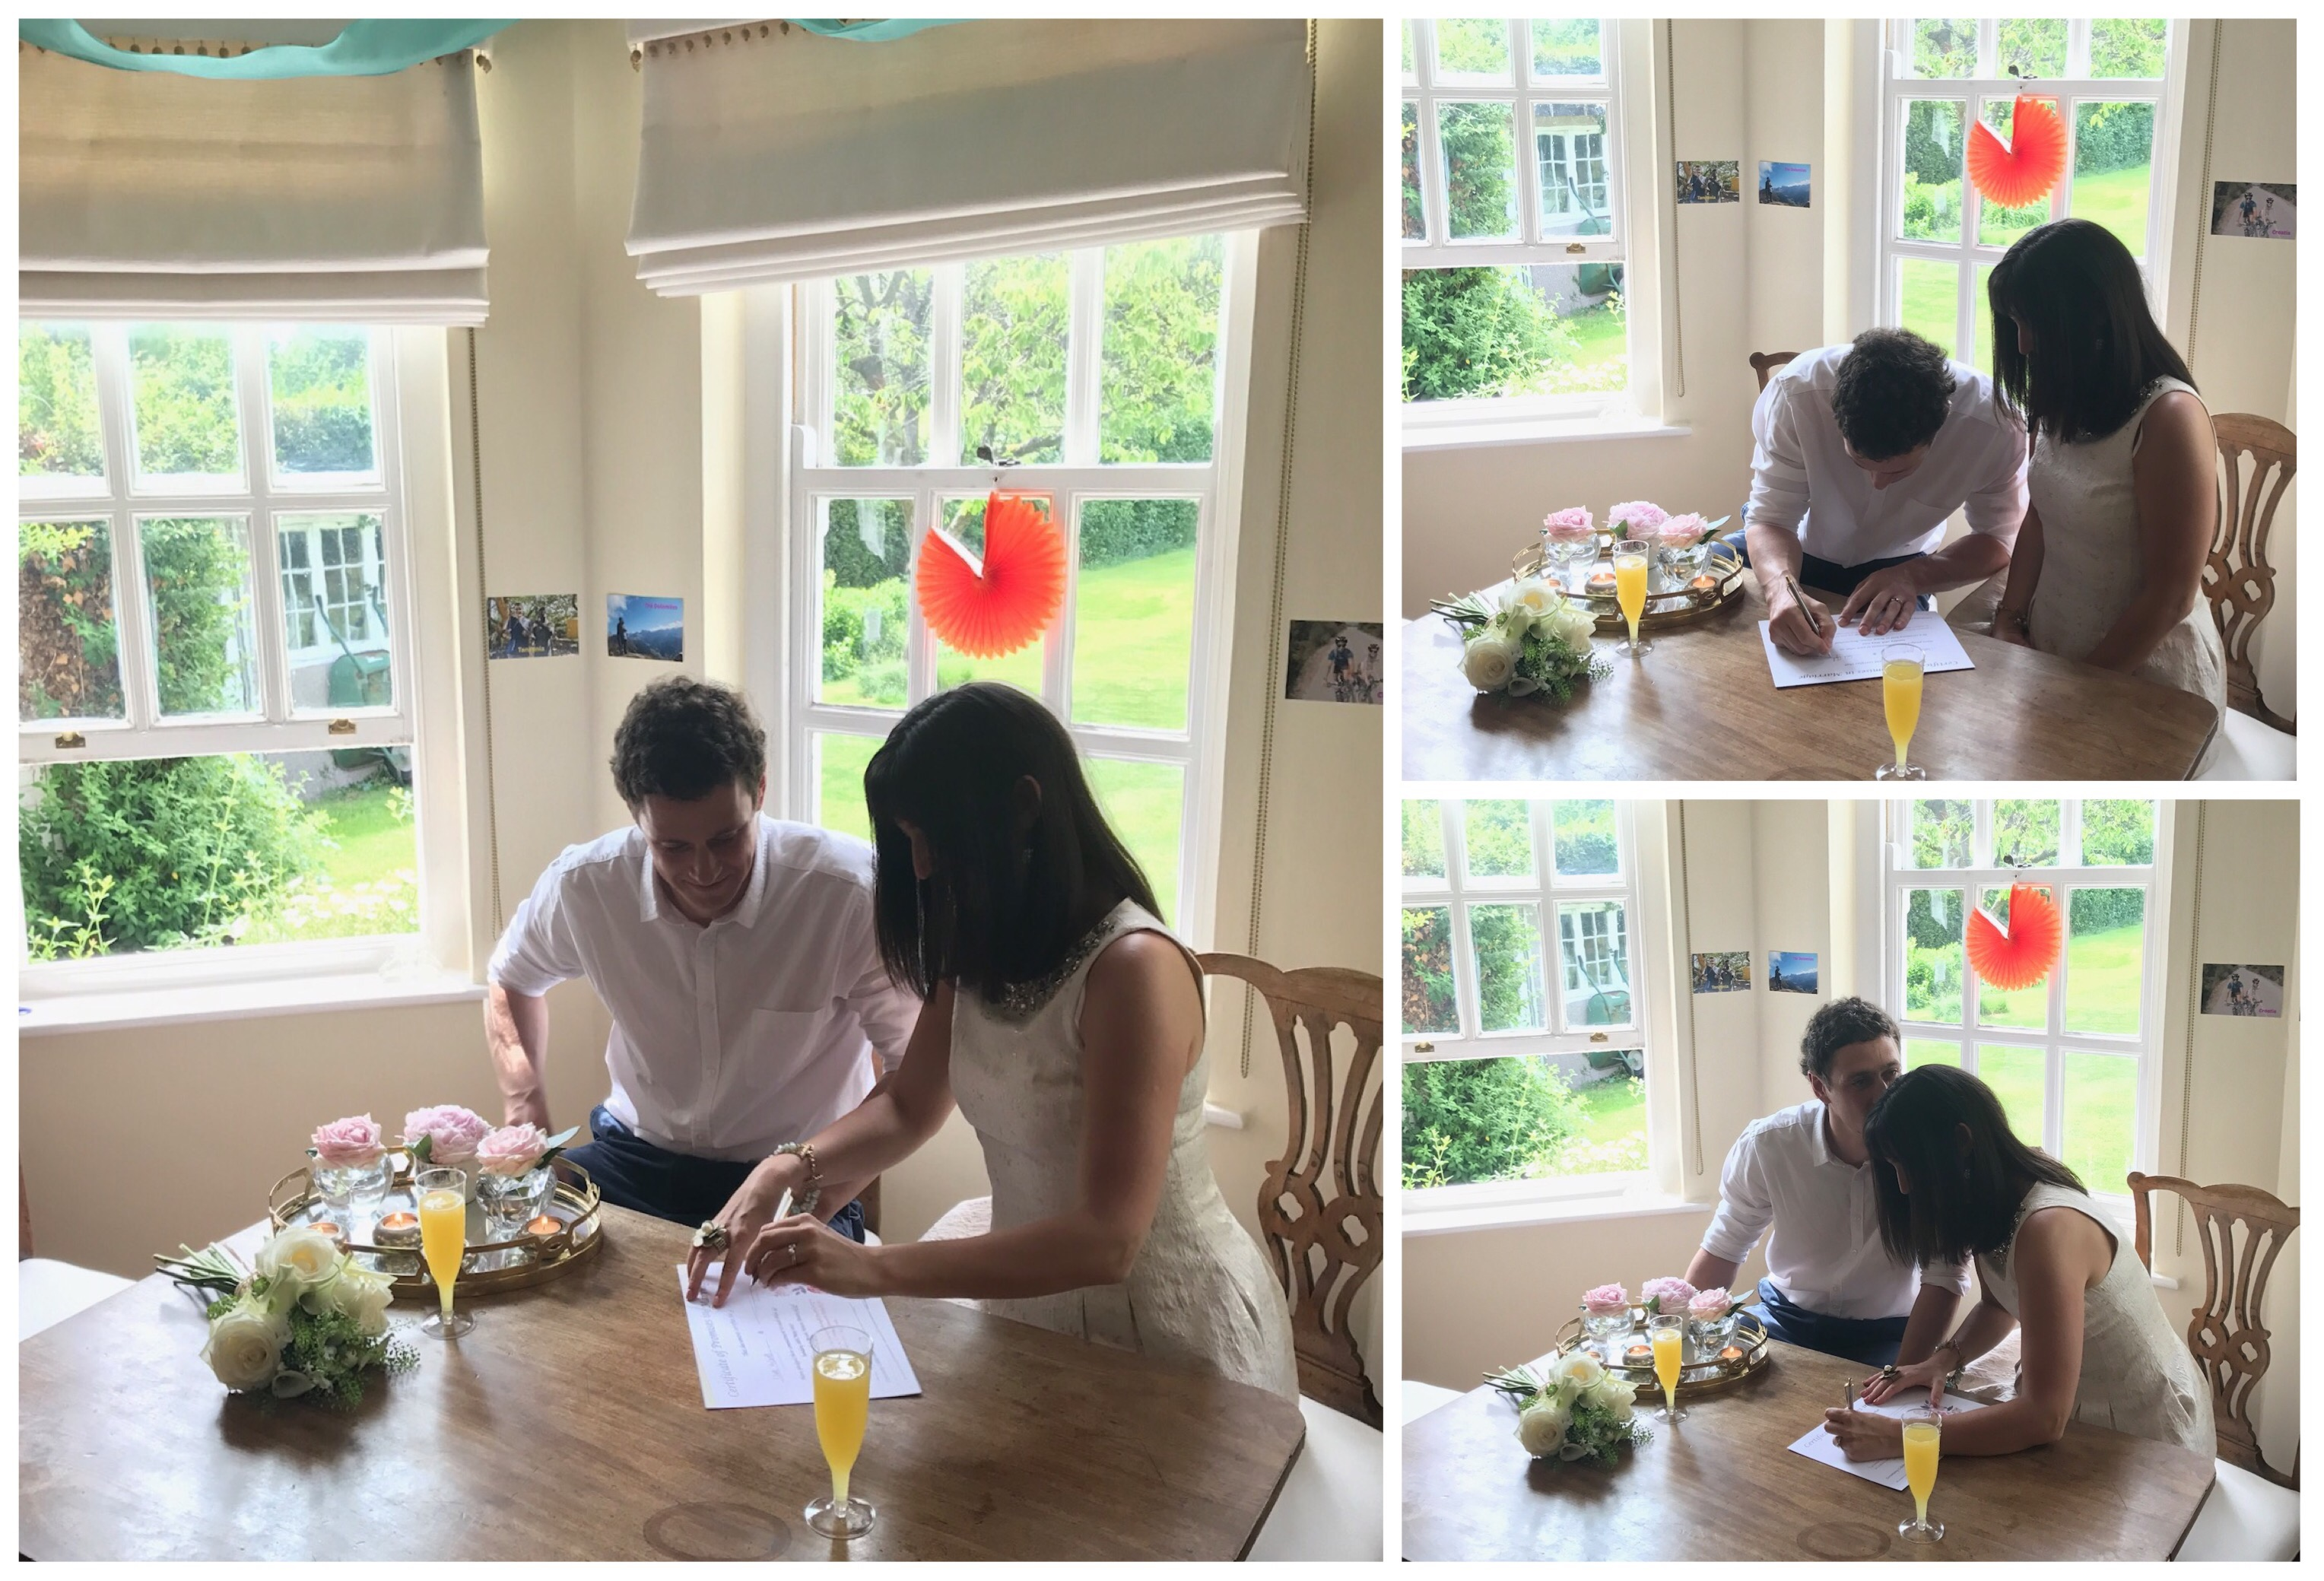 Claire and Dave's Intimate Garden Surprise Wedding Ceremony in Beaconsfield Samantha Kelsie Celebrant